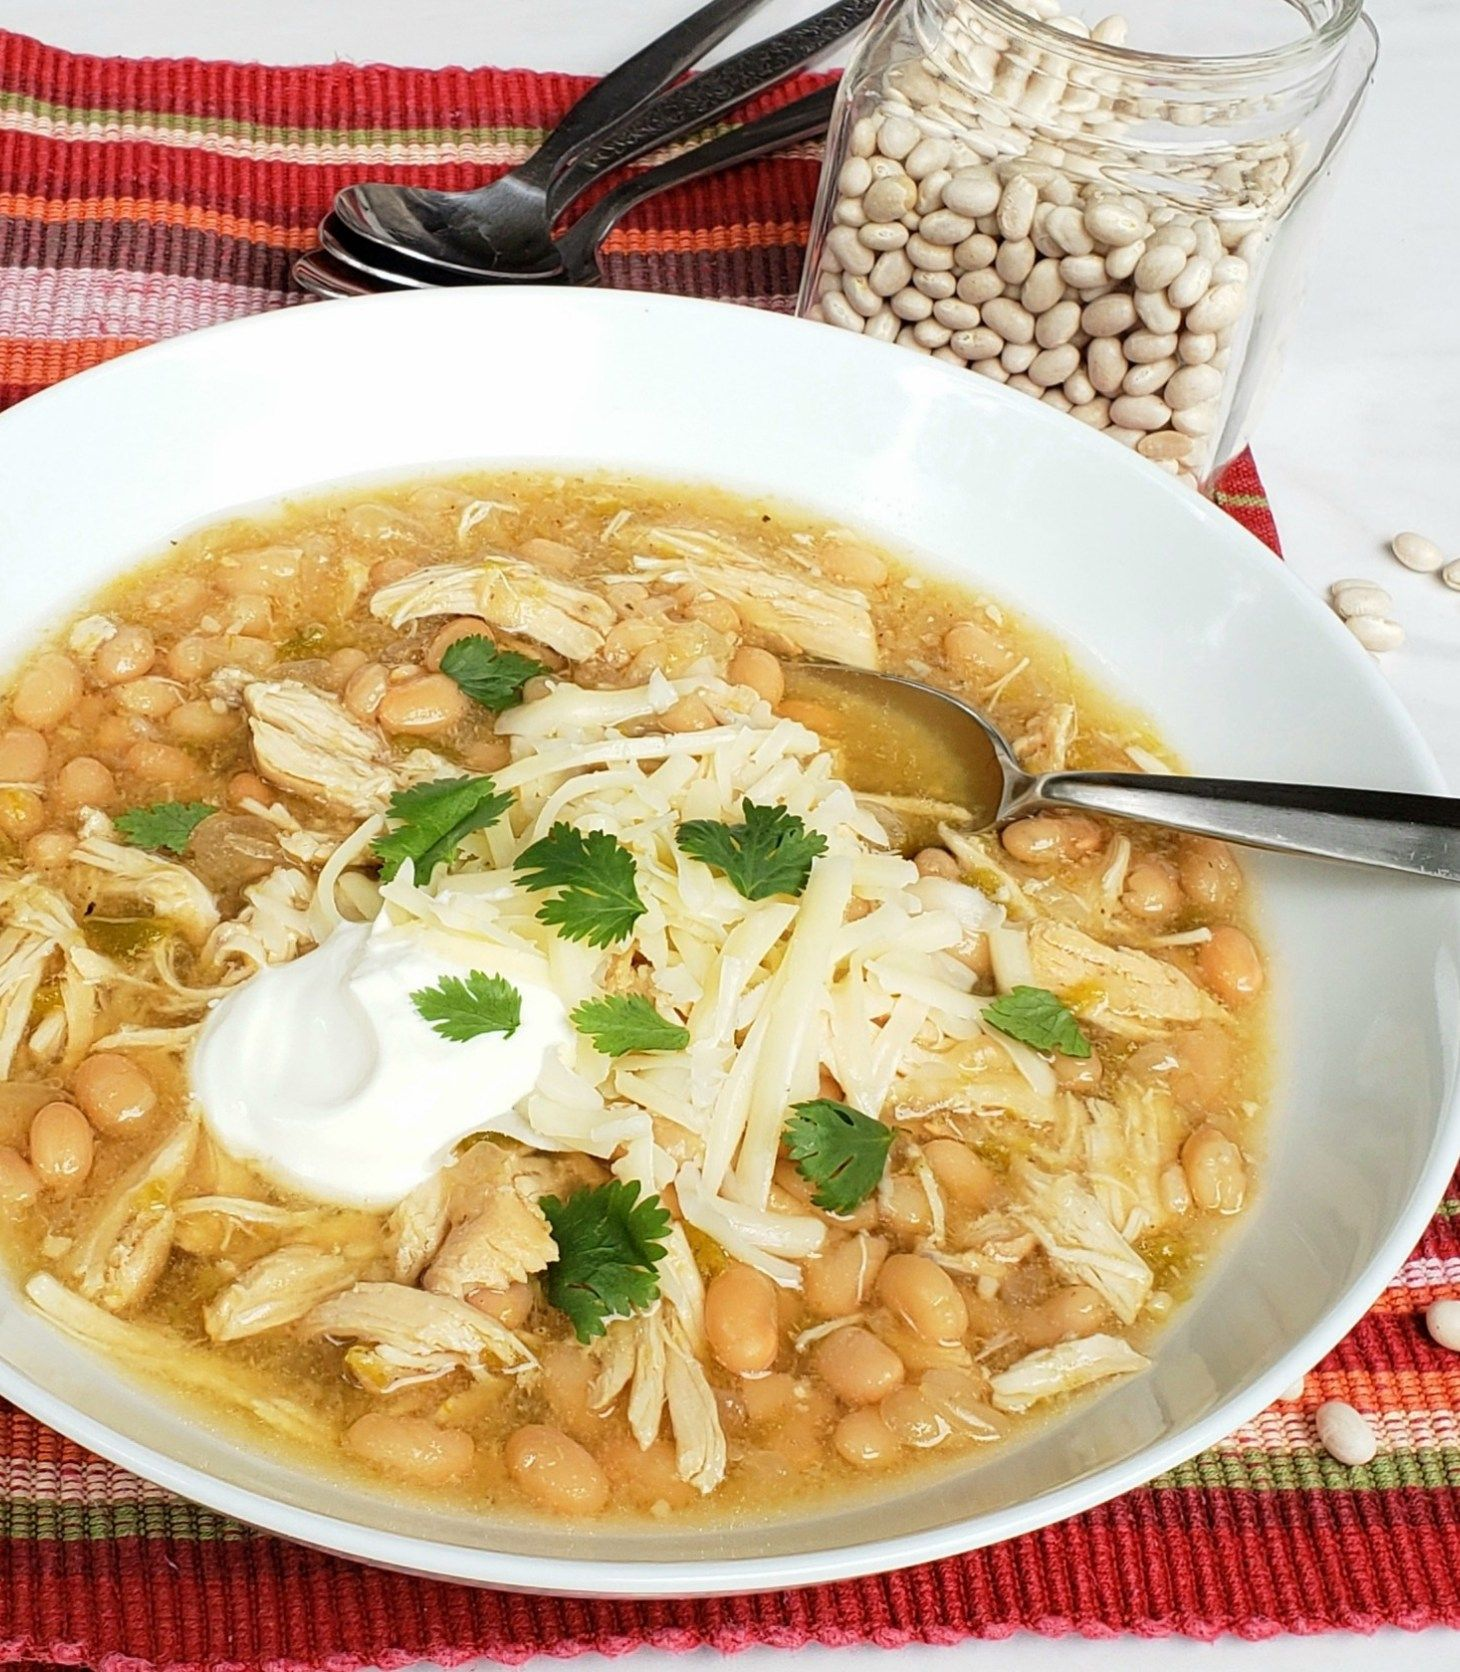 Instant Pot White Bean And Chicken Chili Dump And Start Recipe Made With Dried Beans Grits And Gouda Recipe White Bean Chicken Chili Dry Beans Recipe Chicken Chili